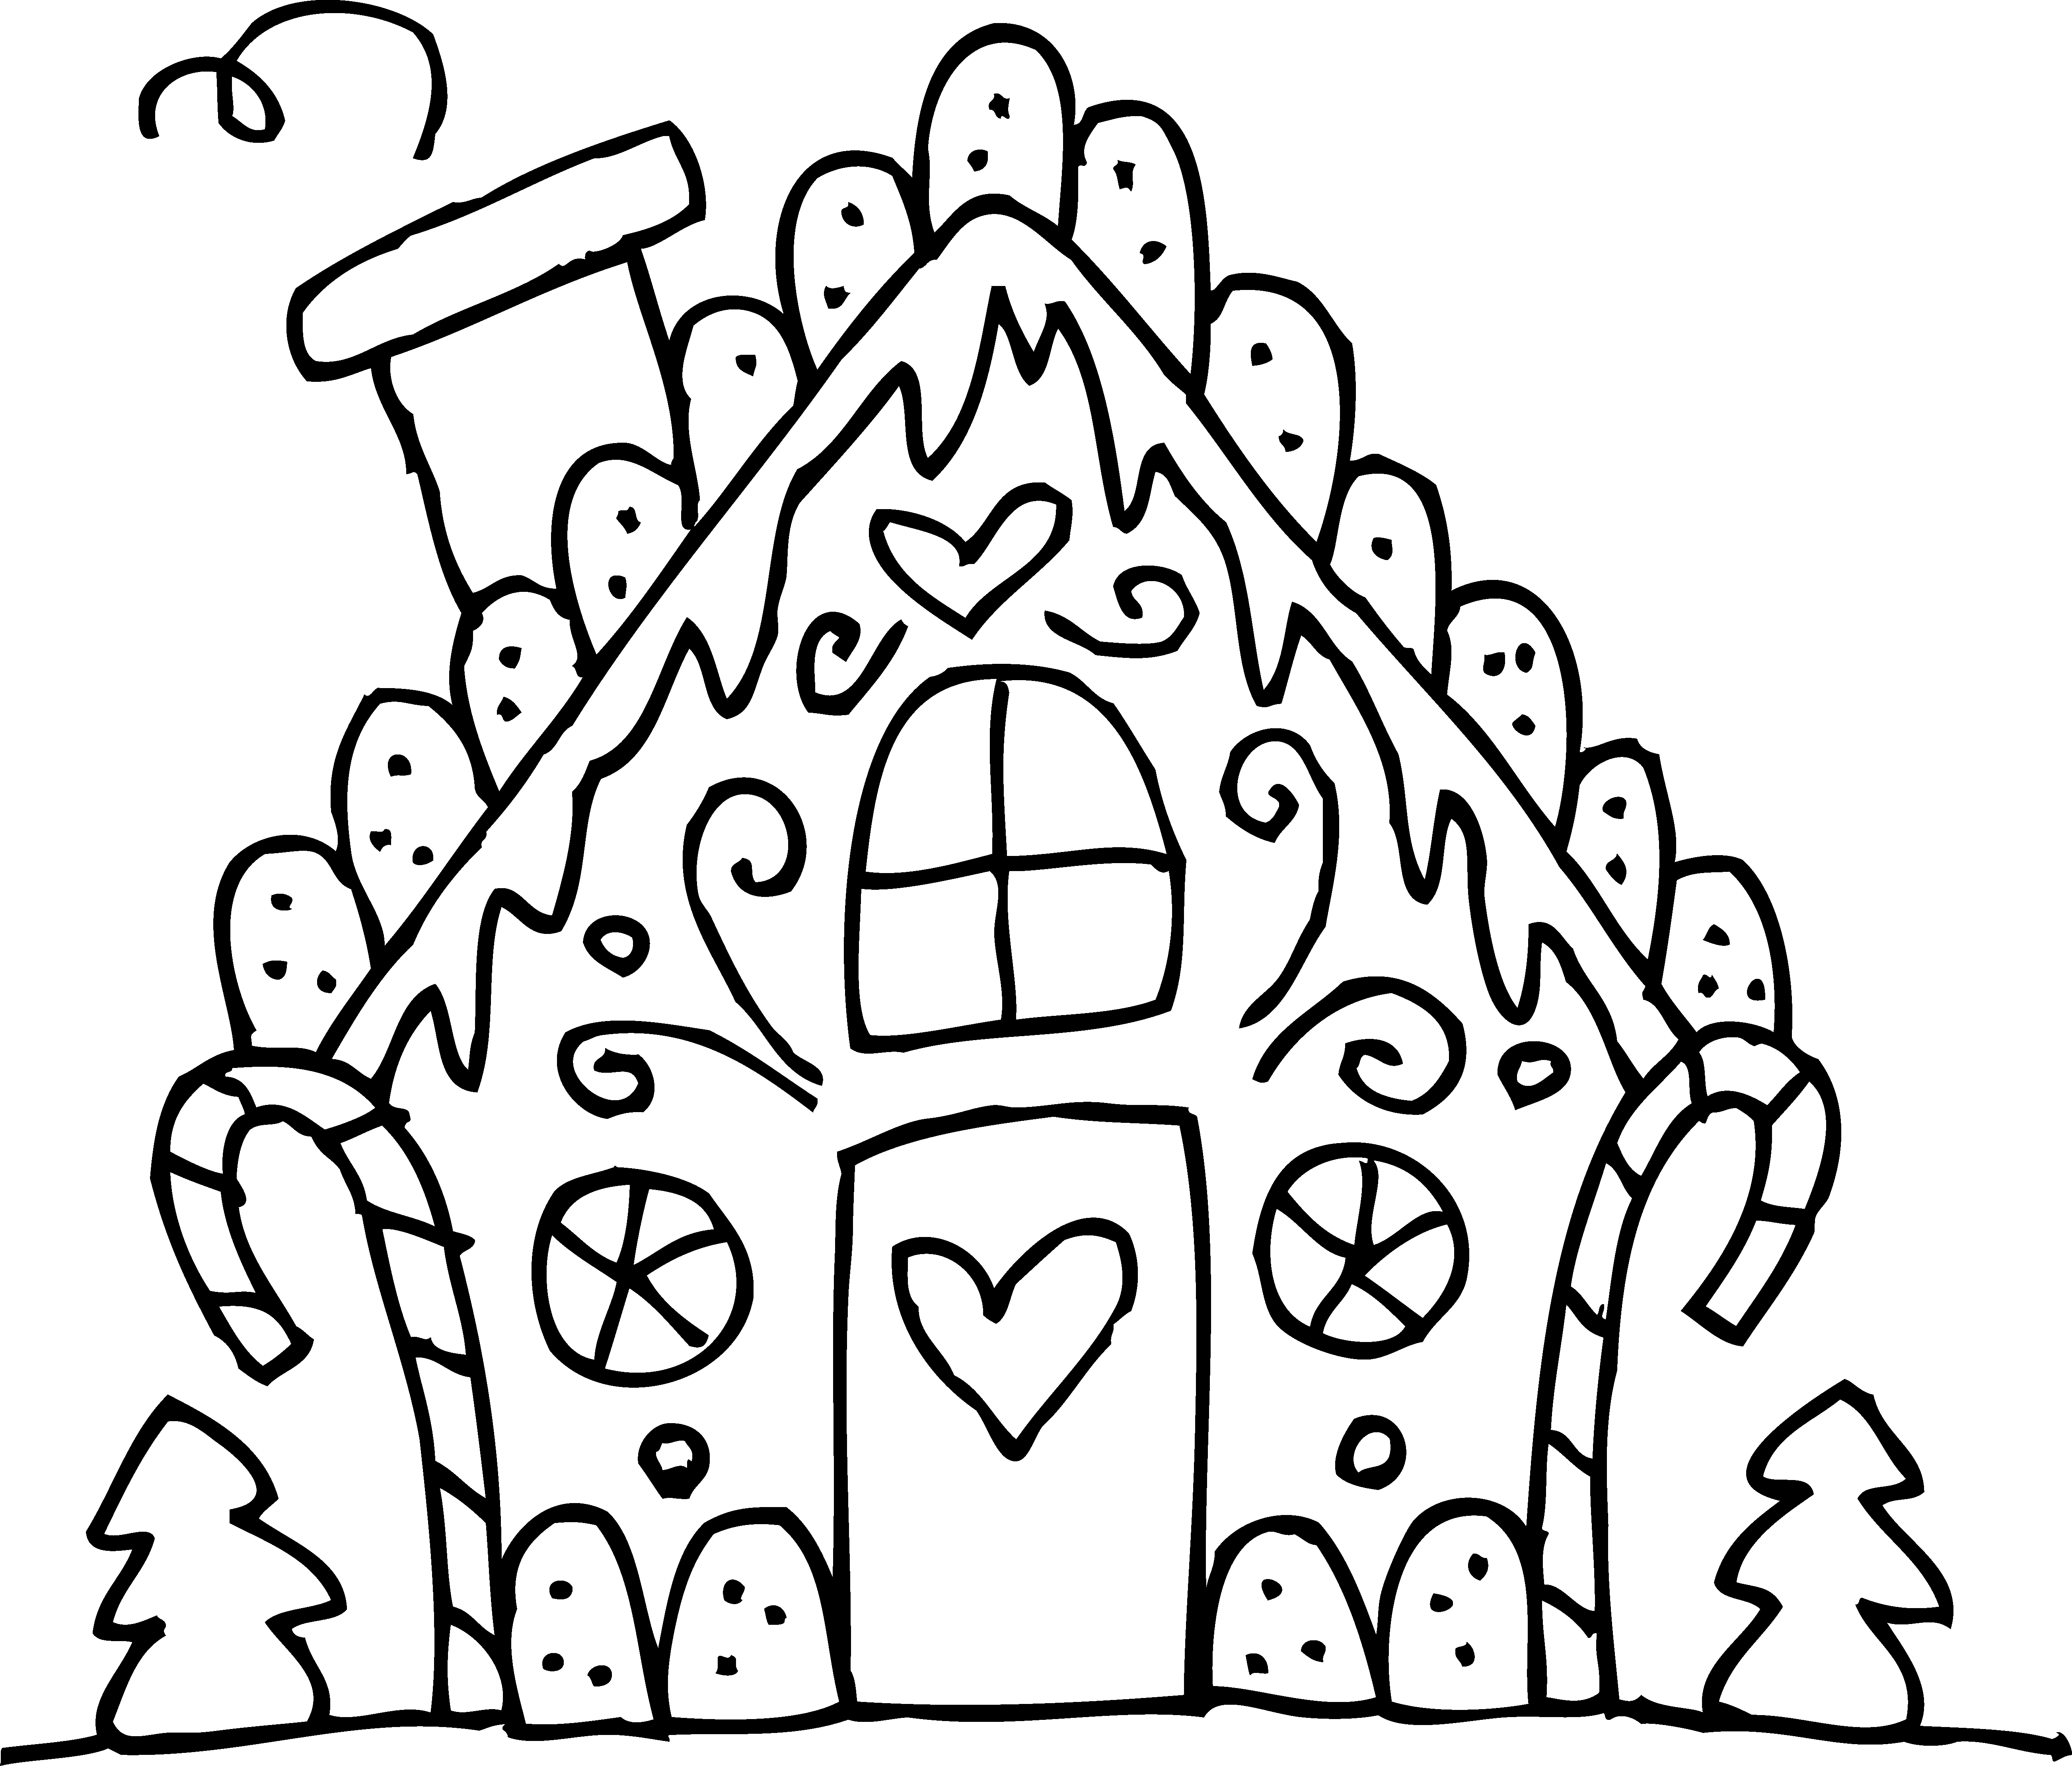 Drawing candy gingerbread house. Pin by penny duberstein